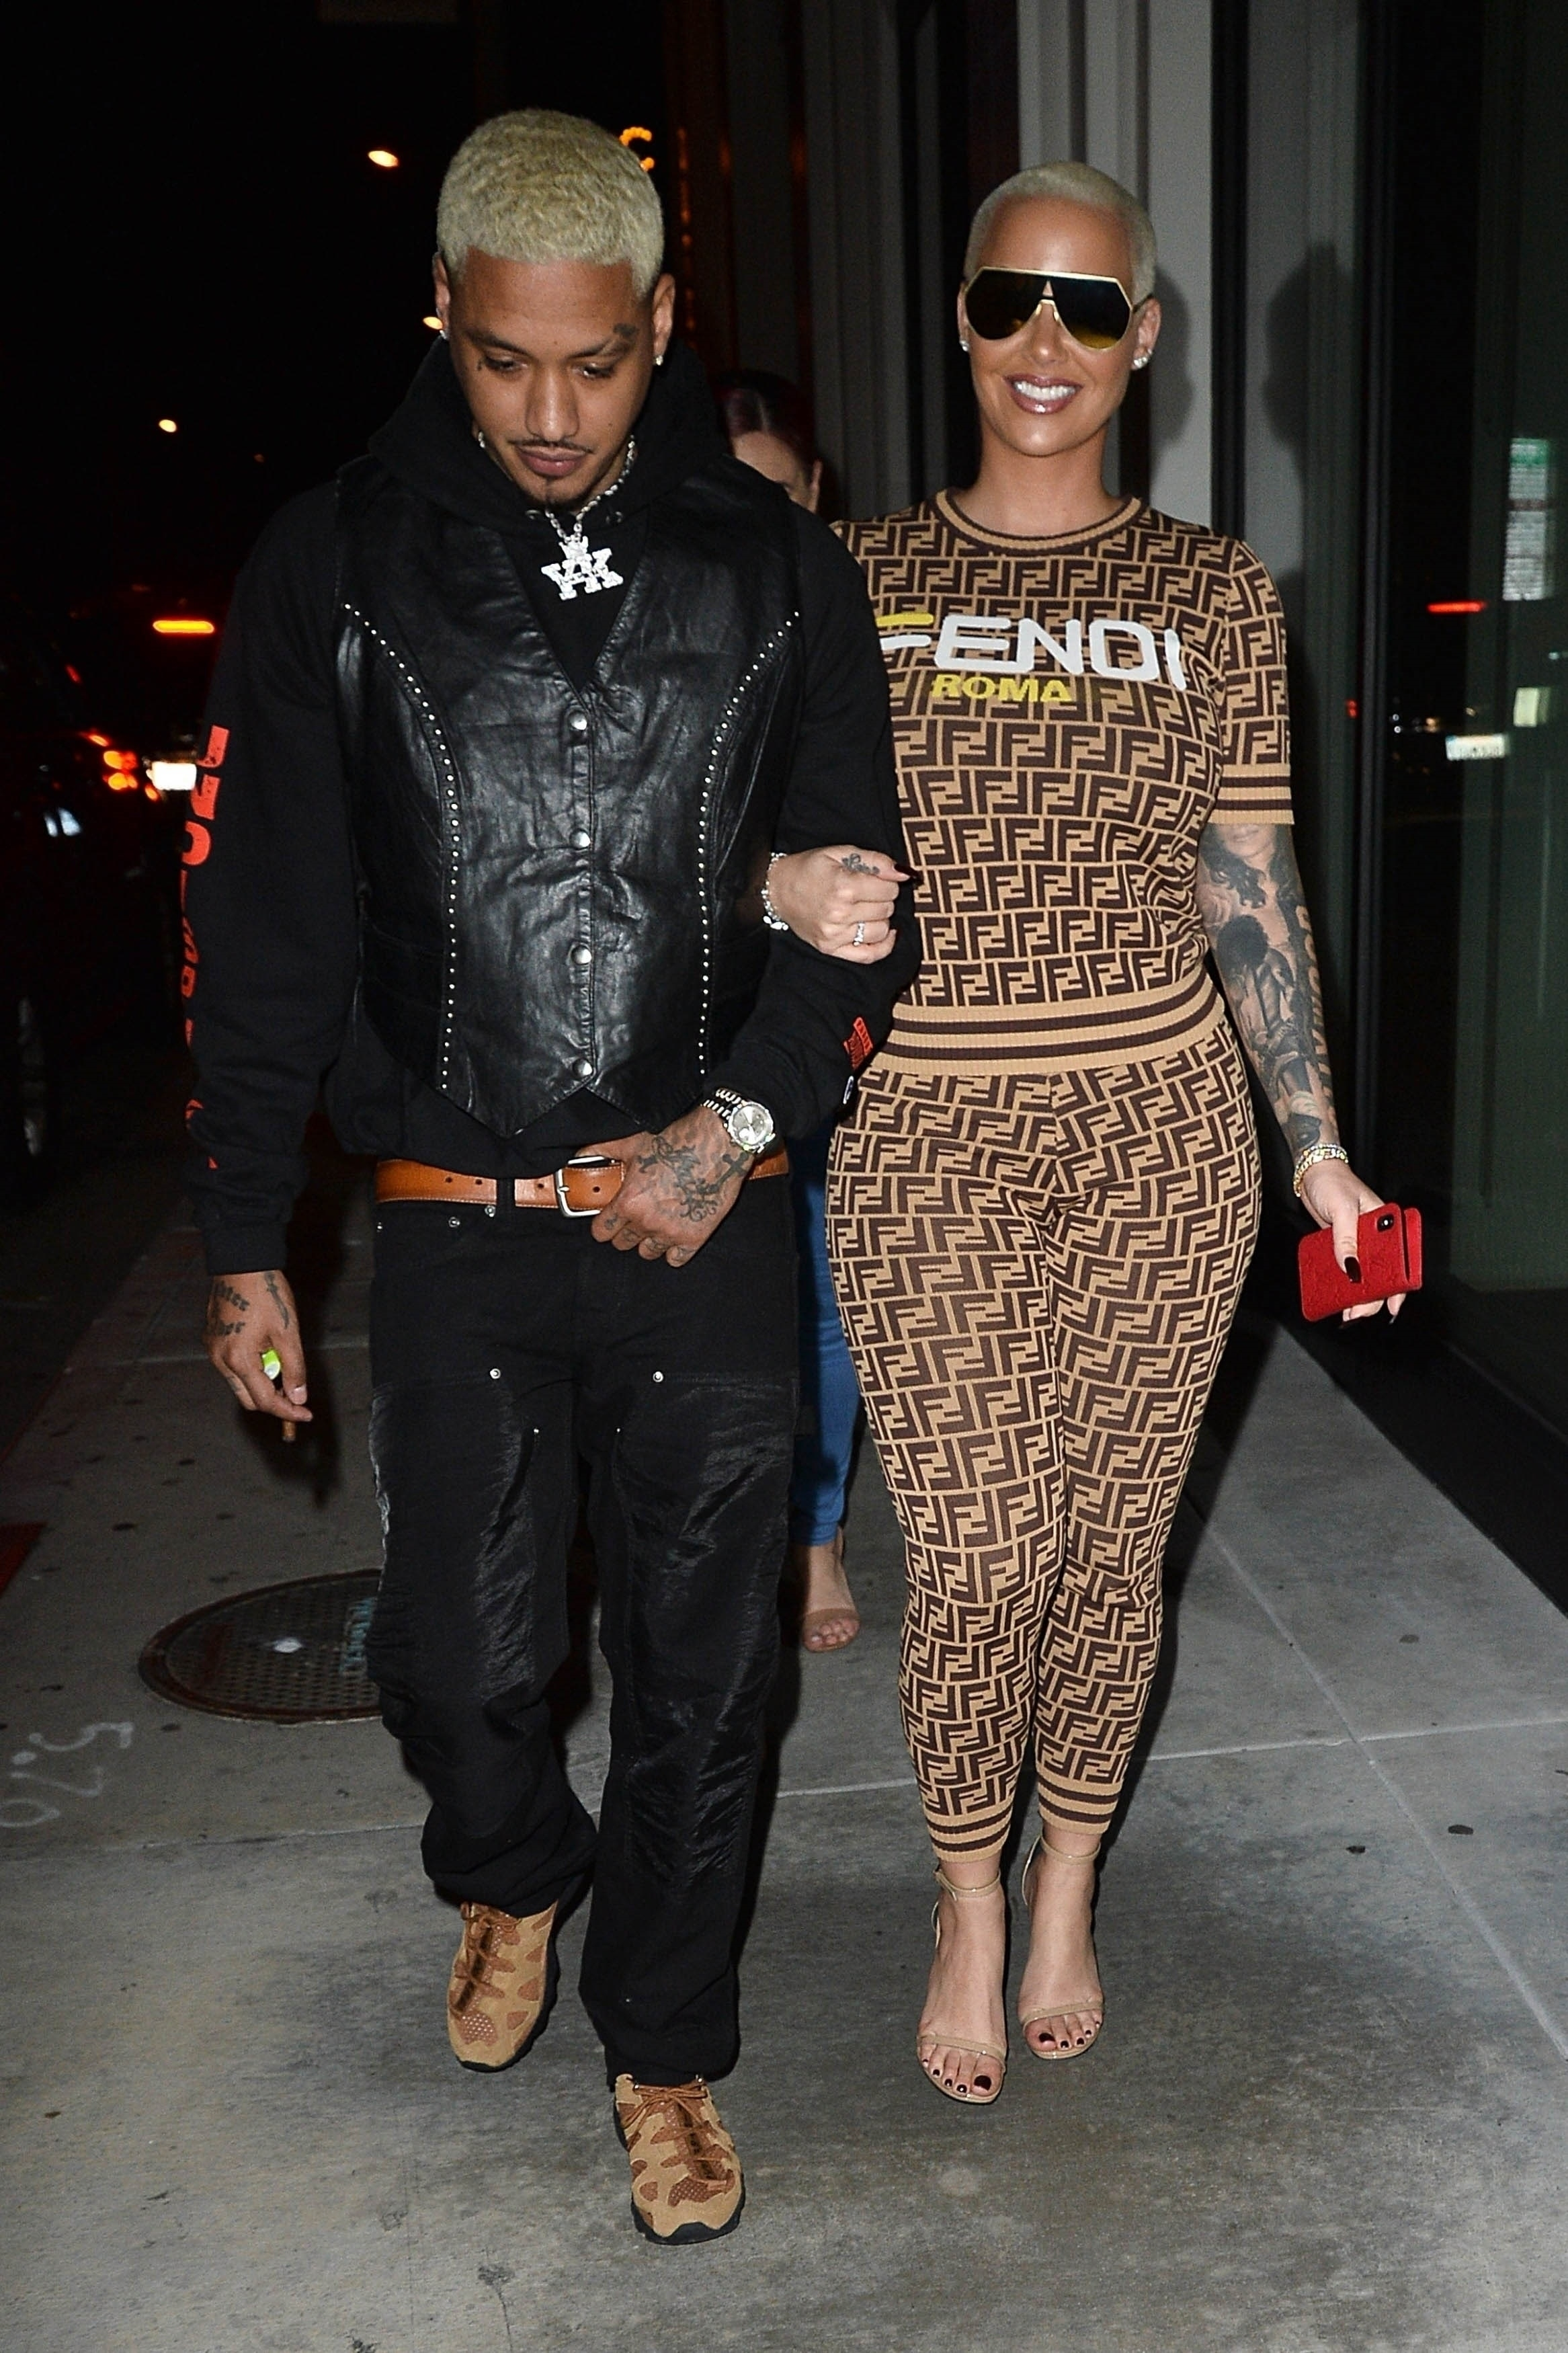 Amber Rose shows off her love for Fendi while out with her boyfriend at the Def Jam Grammy Party in Los Angeles on Feb. 8, 2019.  Pictured: Amber Rose  BACKGRID USA 8 FEBRUARY 2019   BYLINE MUST READ: All Access / BACKGRID  USA: +1 310 798 9111 / usasales@backgrid.com  UK: +44 208 344 2007 / uksales@backgrid.com  *UK Clients   Pictures Containing Children Please Pixelate Face Prior To Publication*